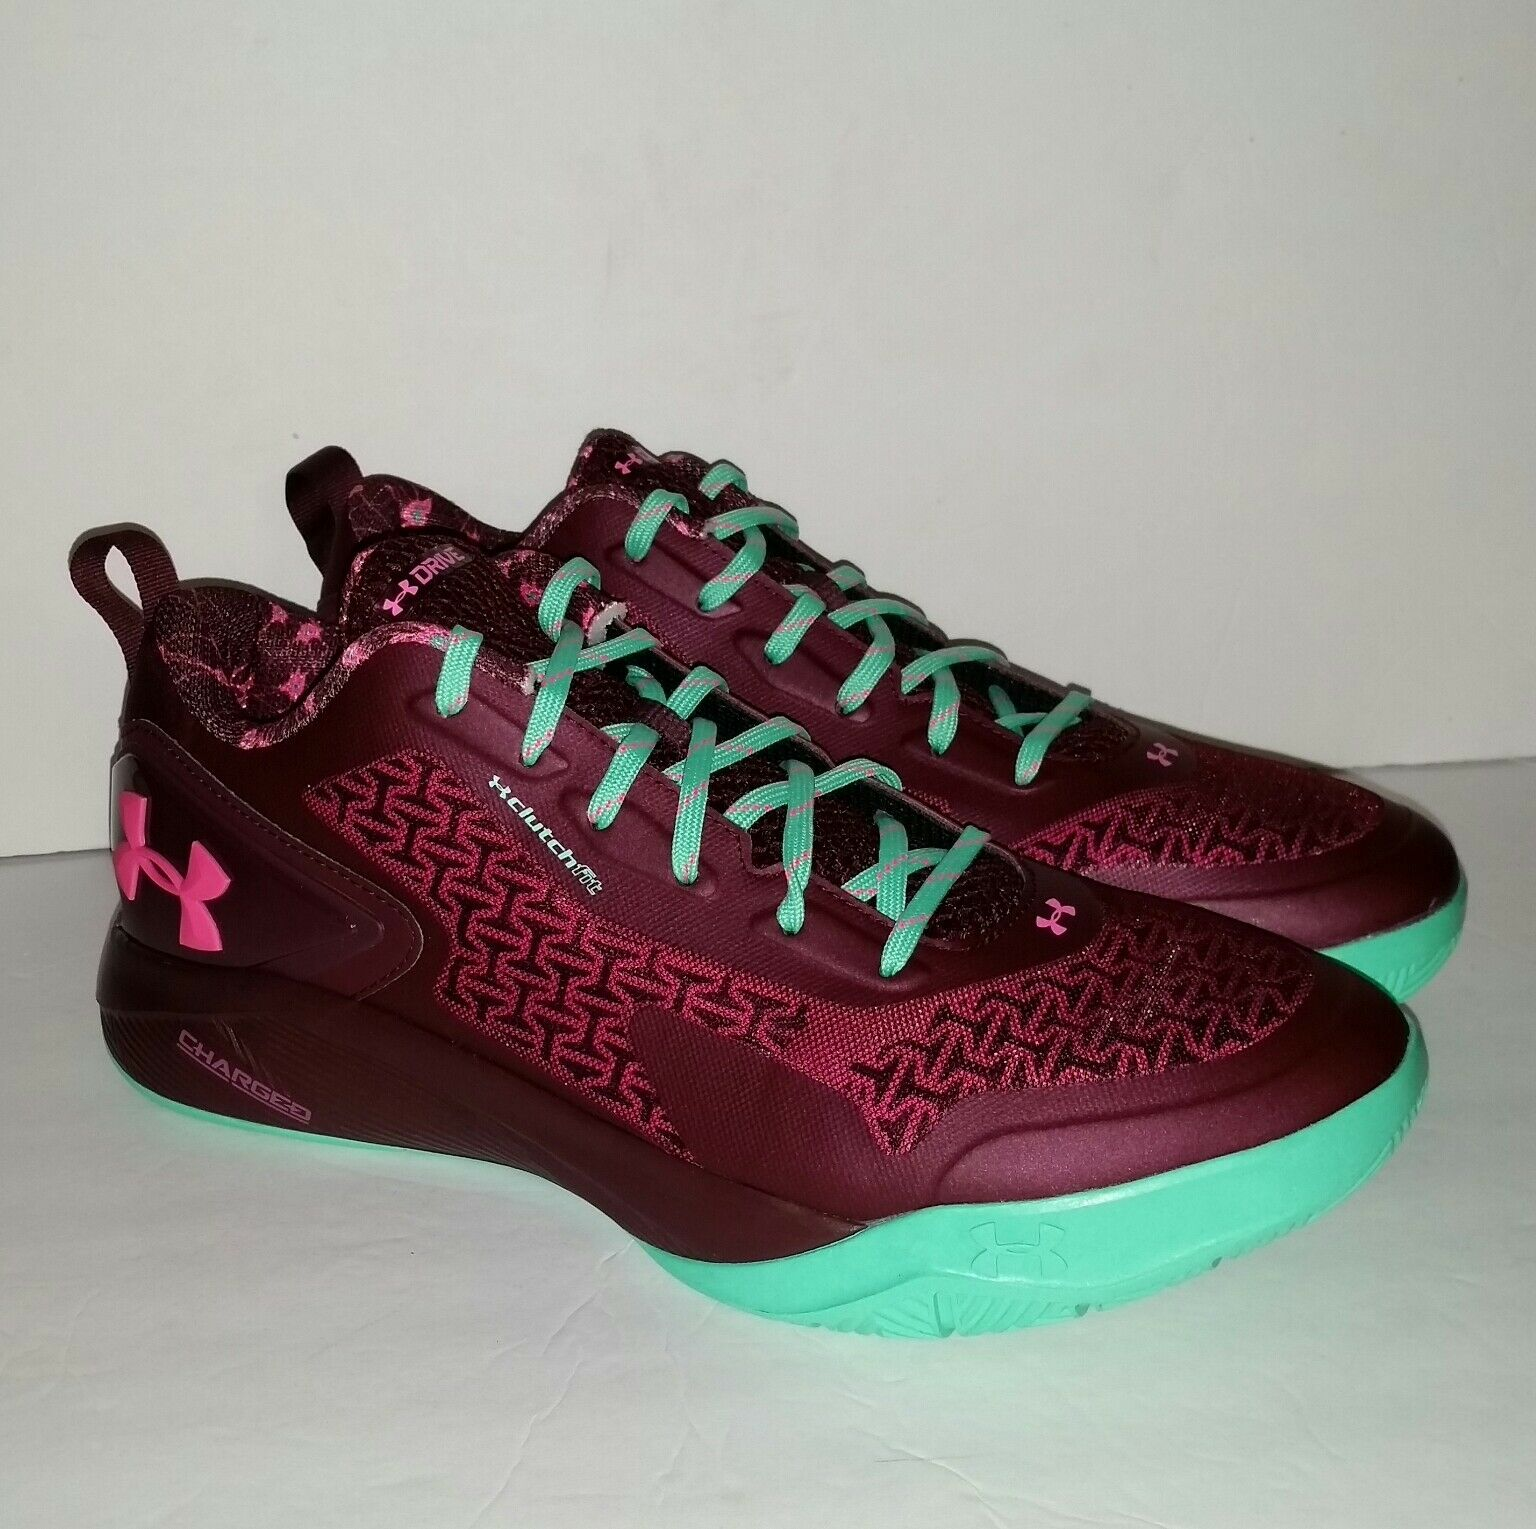 Under Armour Clutchfit Drive 2 Low Basketball scarpe Uomo 13.5 13.5 13.5 Burgundy Teal NEW df8105